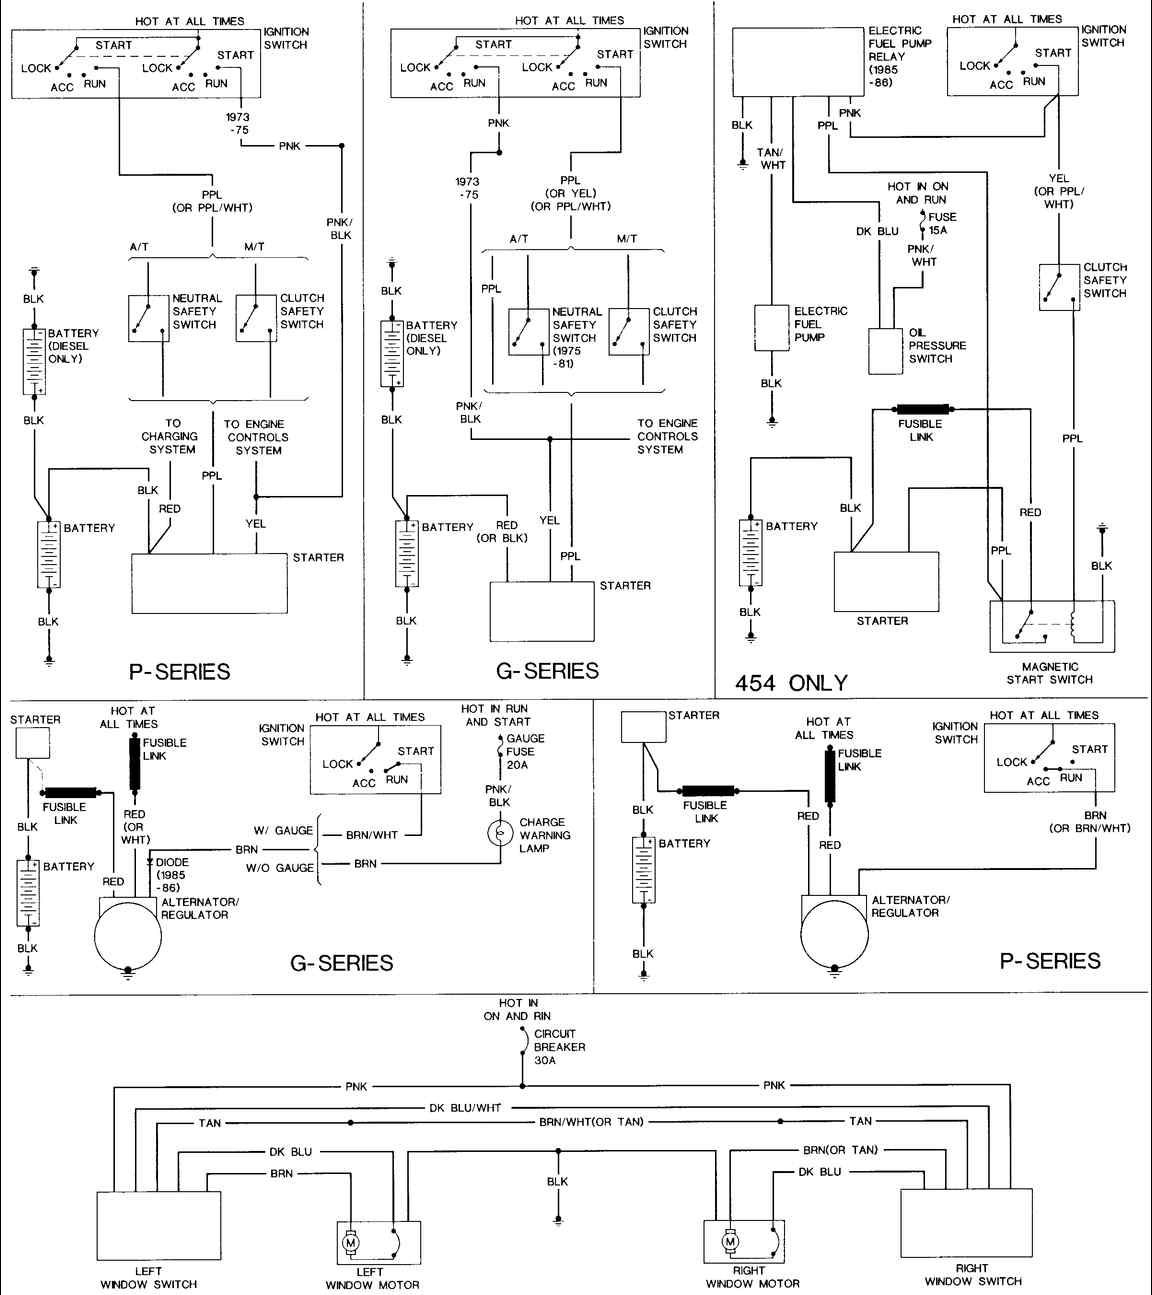 hight resolution of 1980 chevy truck wiring diagram images gallery